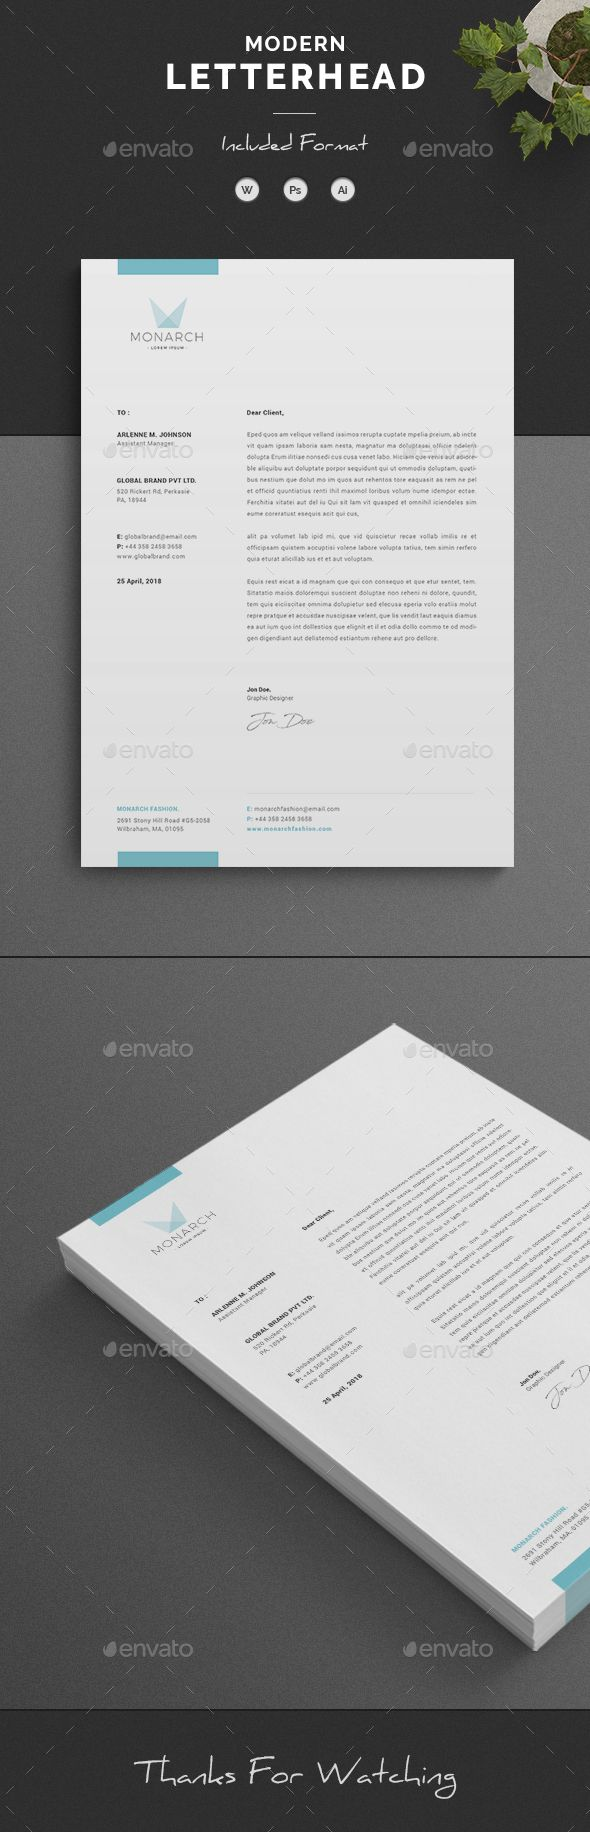 Letterhead Corporate Letterhead page designs are very easy to use and customize, so you can quickly tailor-make your letterhead for any opportunity. Use this letterhead template for company or corporate use.